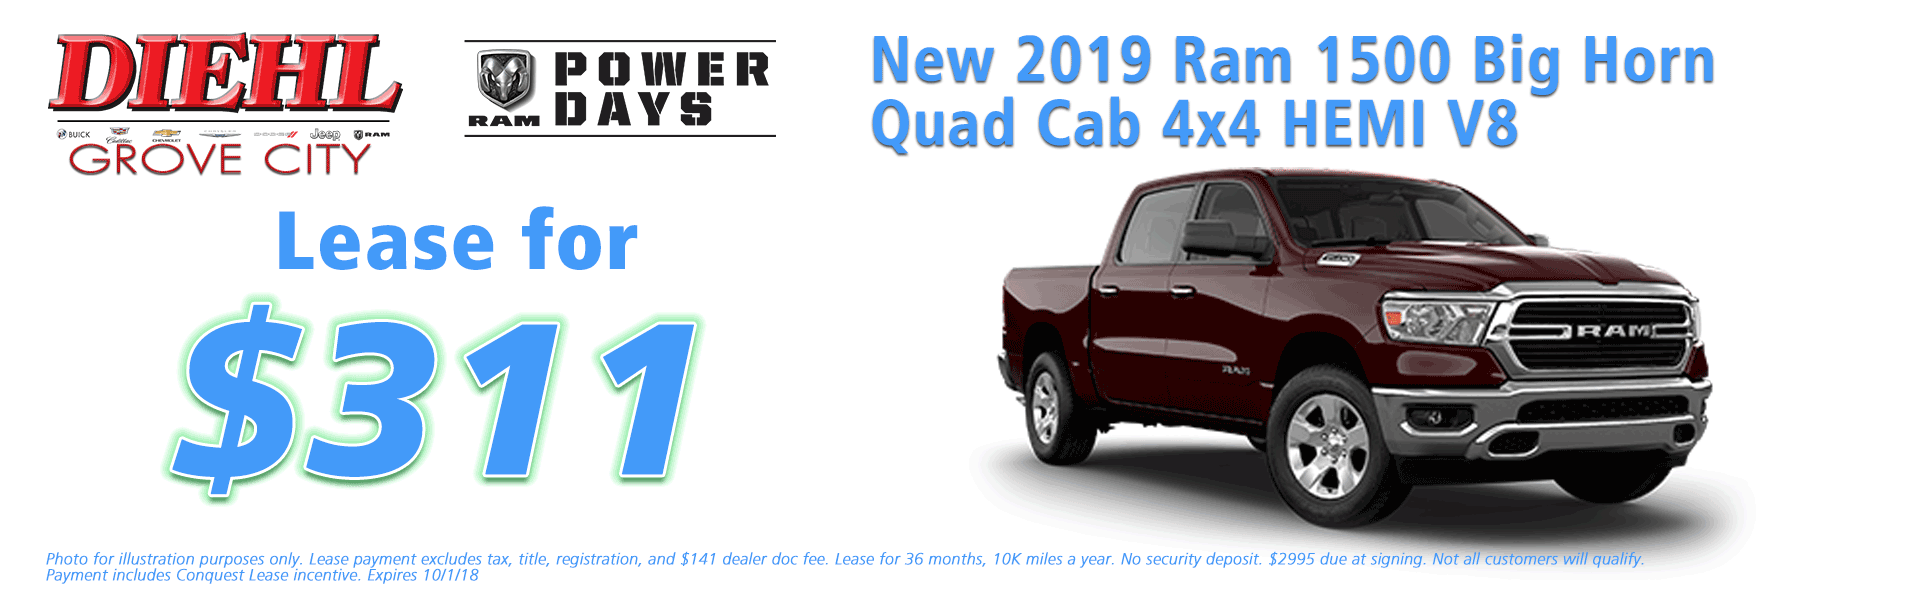 Diehl of Grove City Chrysler Jeep Dodge Ram Chevrolet Buick Cadillac Grove City, PA sales service parts collision repair NEW 2019 RAM 1500 BIG HORN / LONE STAR QUAD CAB 4X4 6'4